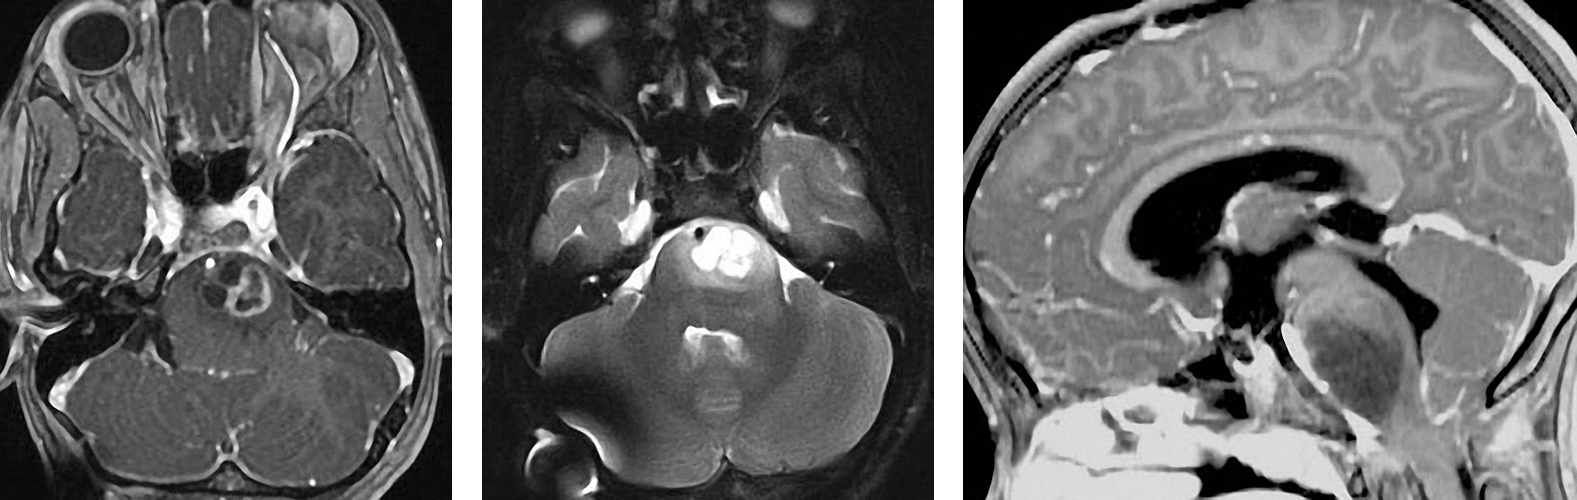 Figure 1: An example of a diffuse pontine glioma. Please note the diffuse nature of the tumor affecting the pons (right image).